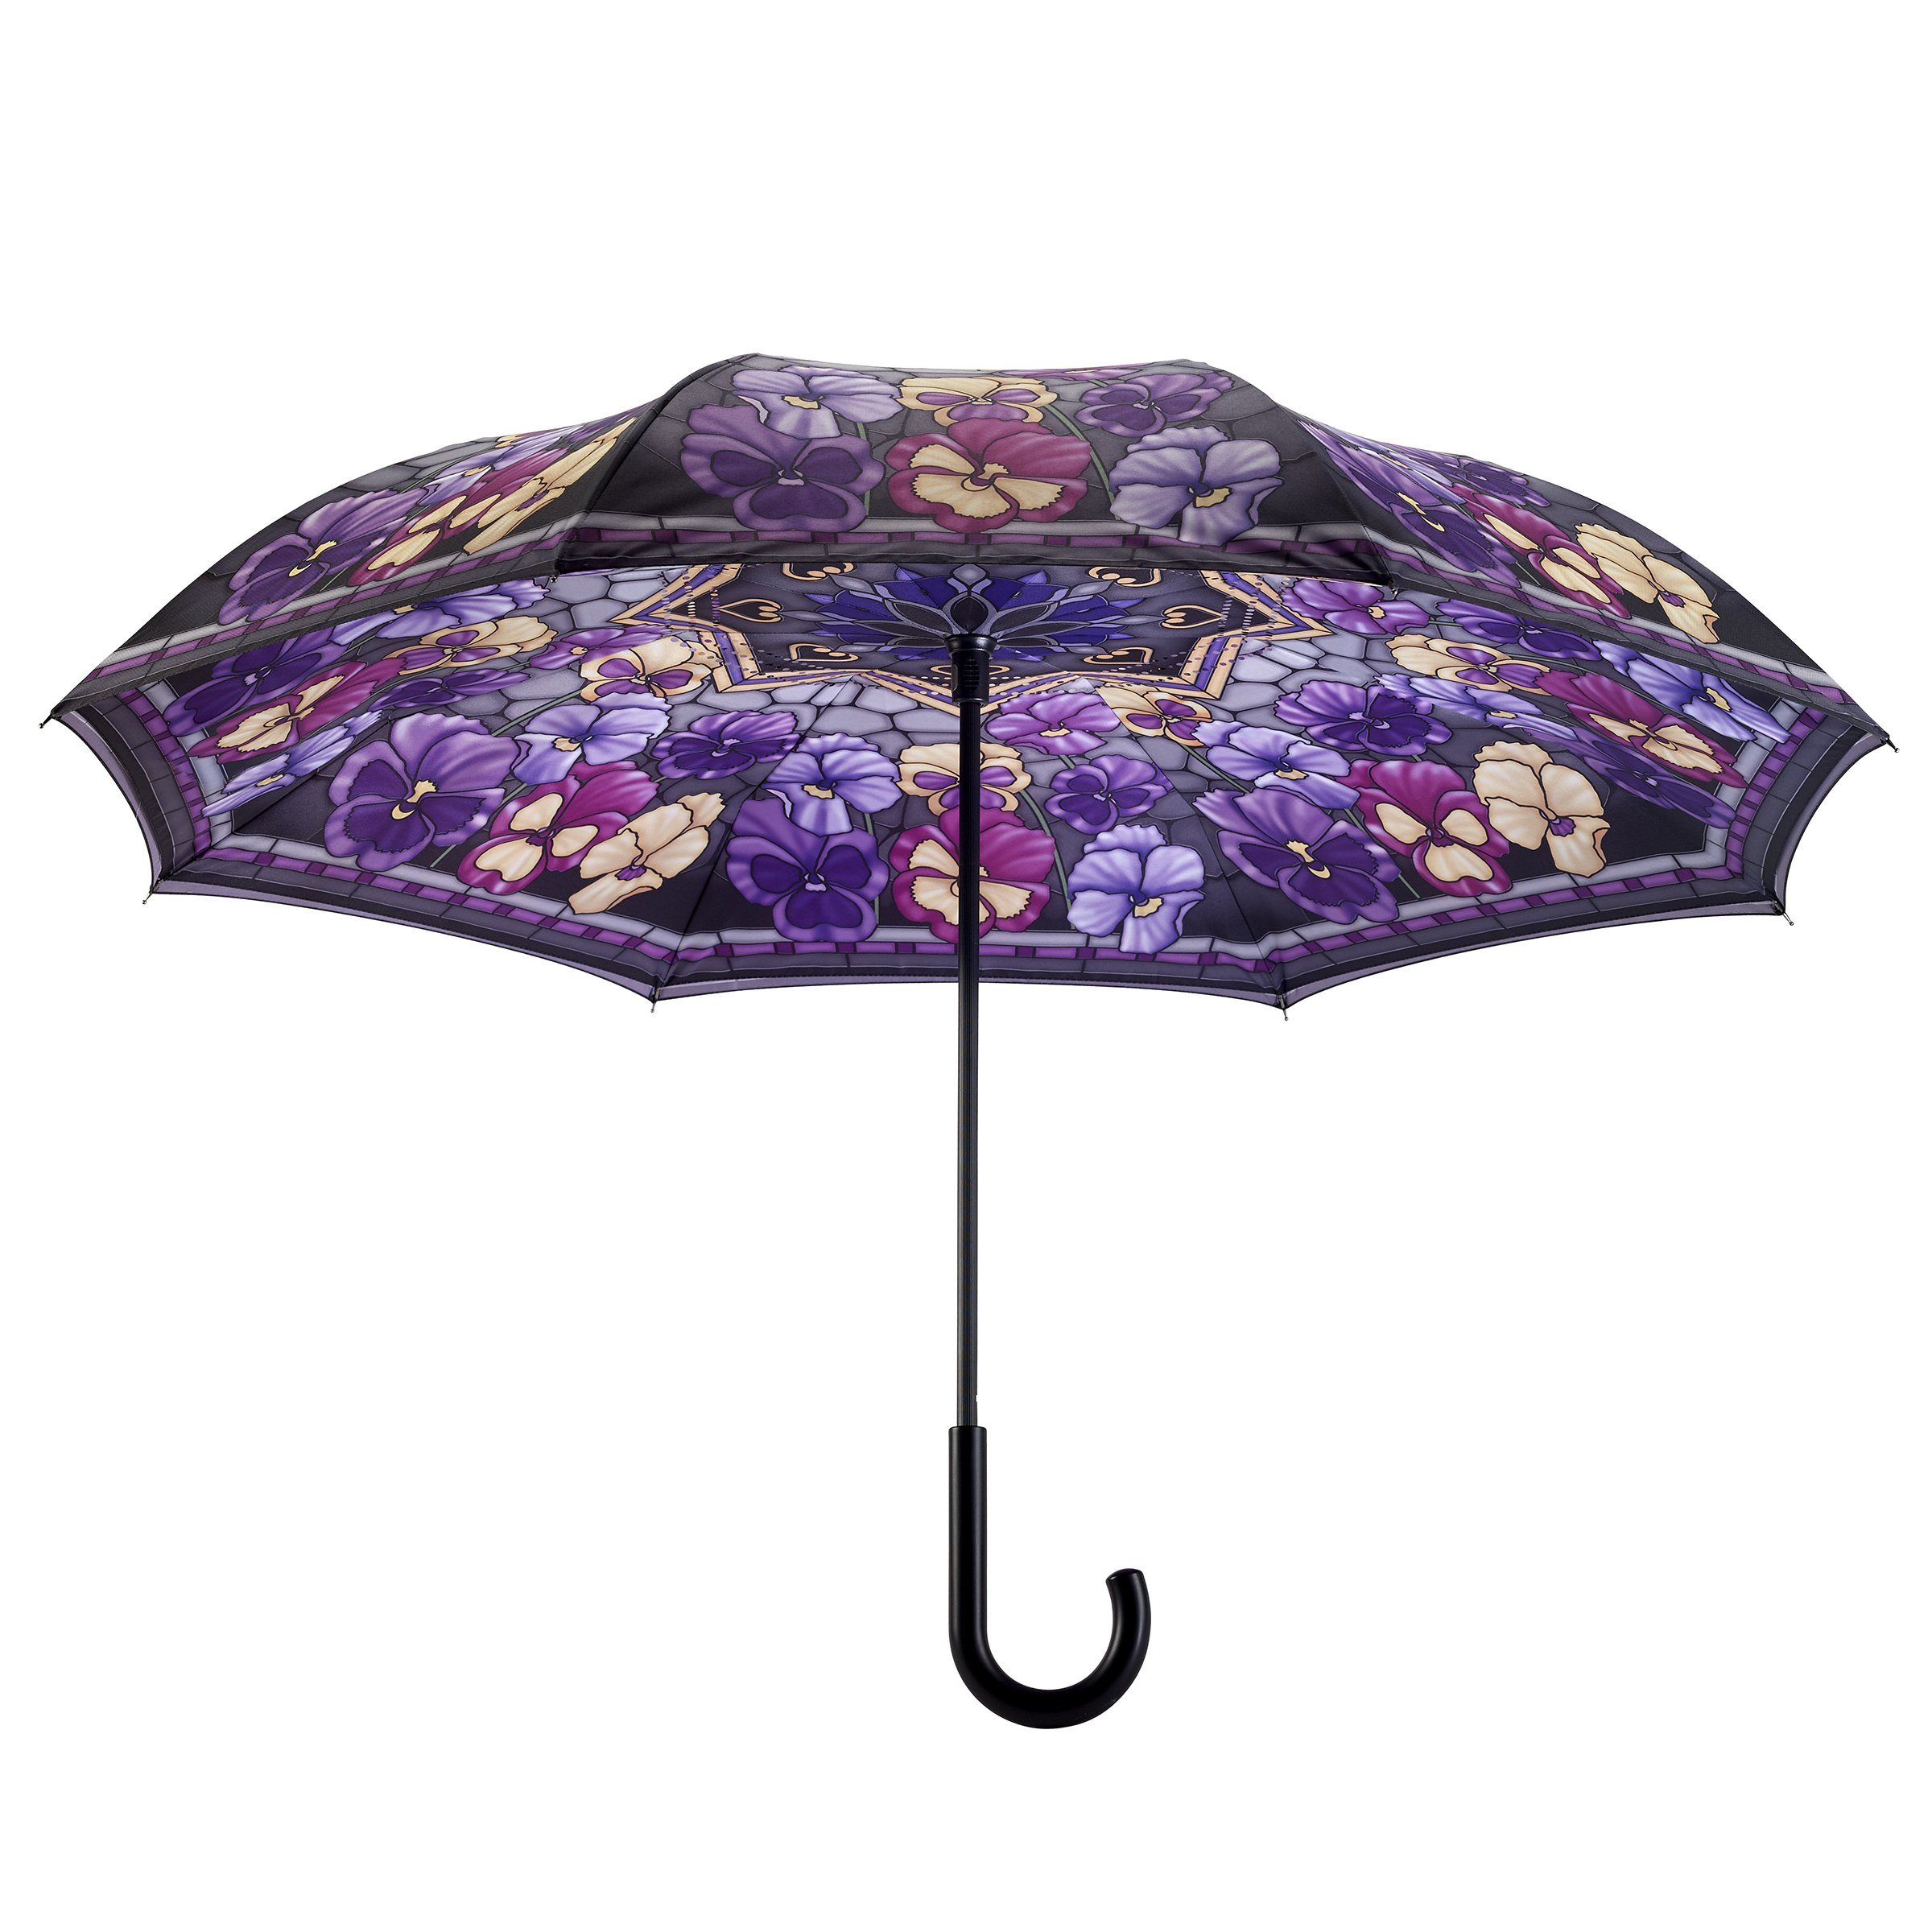 Galleria's Reverse Close Umbrella, Stained Glass Pansies with art on both sides.